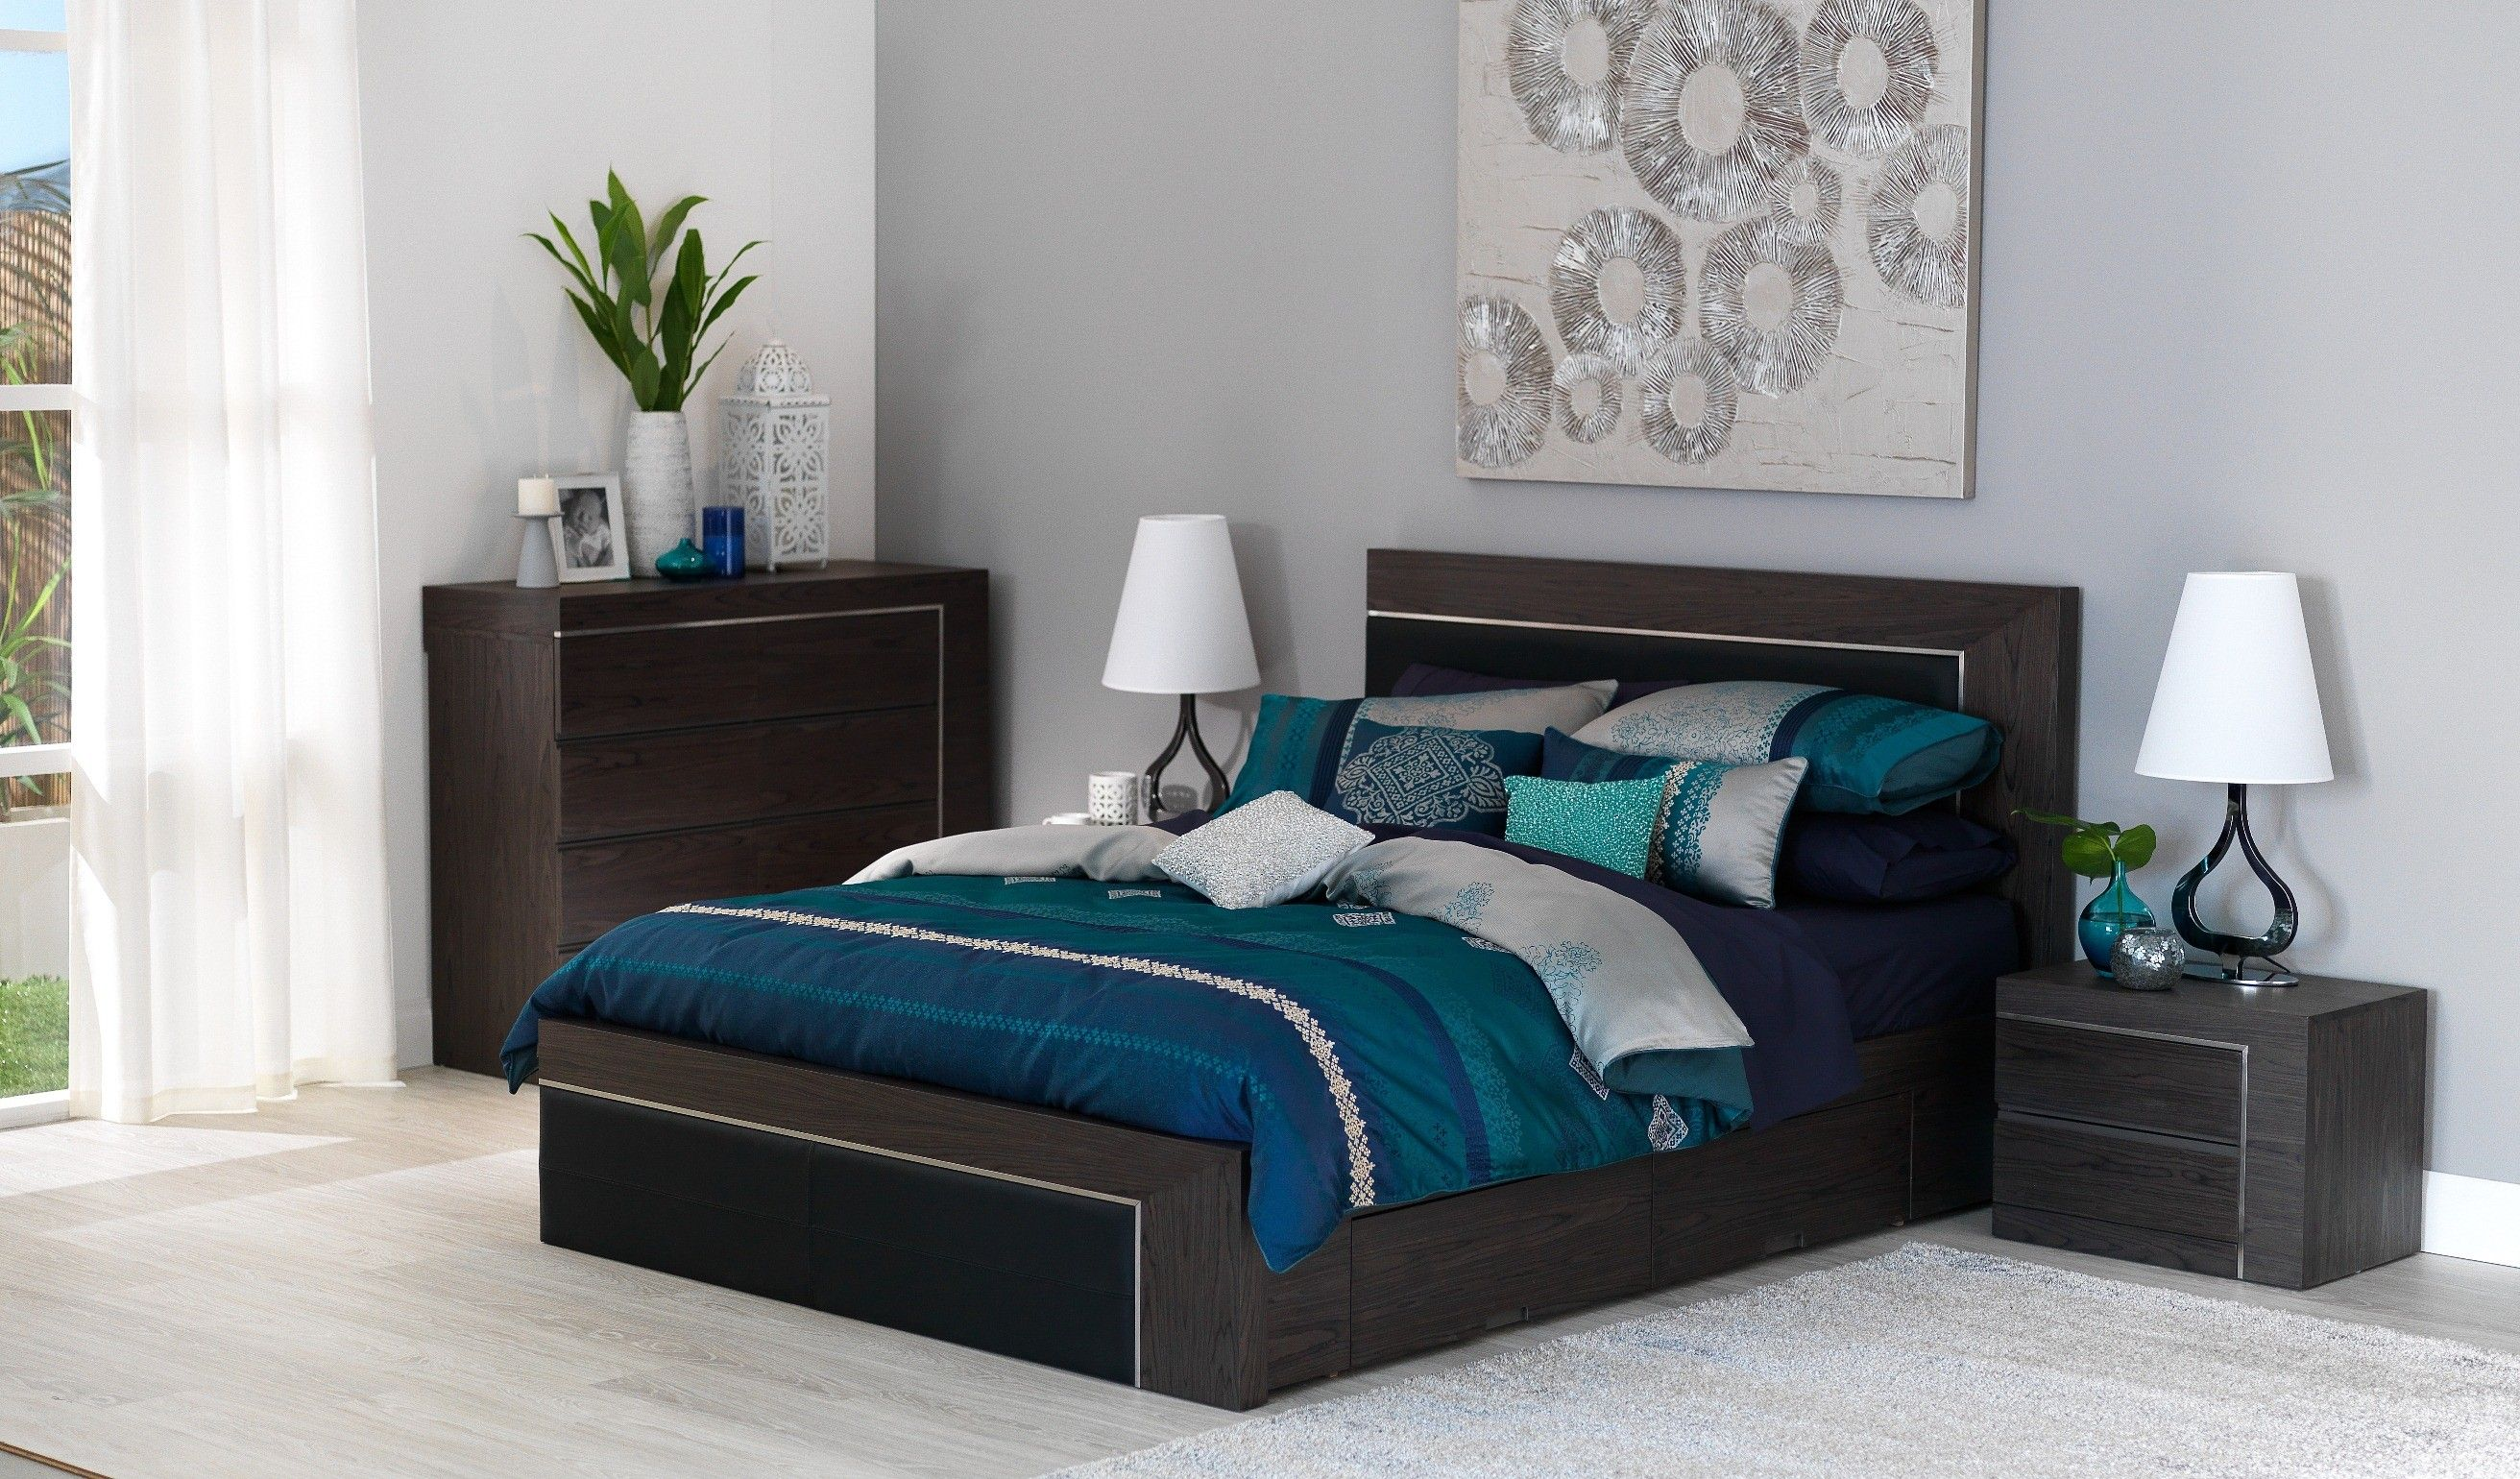 Berlin Bedroom Furniture   Contemporary Furniture Crafted From Premium  Quality Medium Density Fibreboard (MDF) And Tastefully Complemented With Cu2026